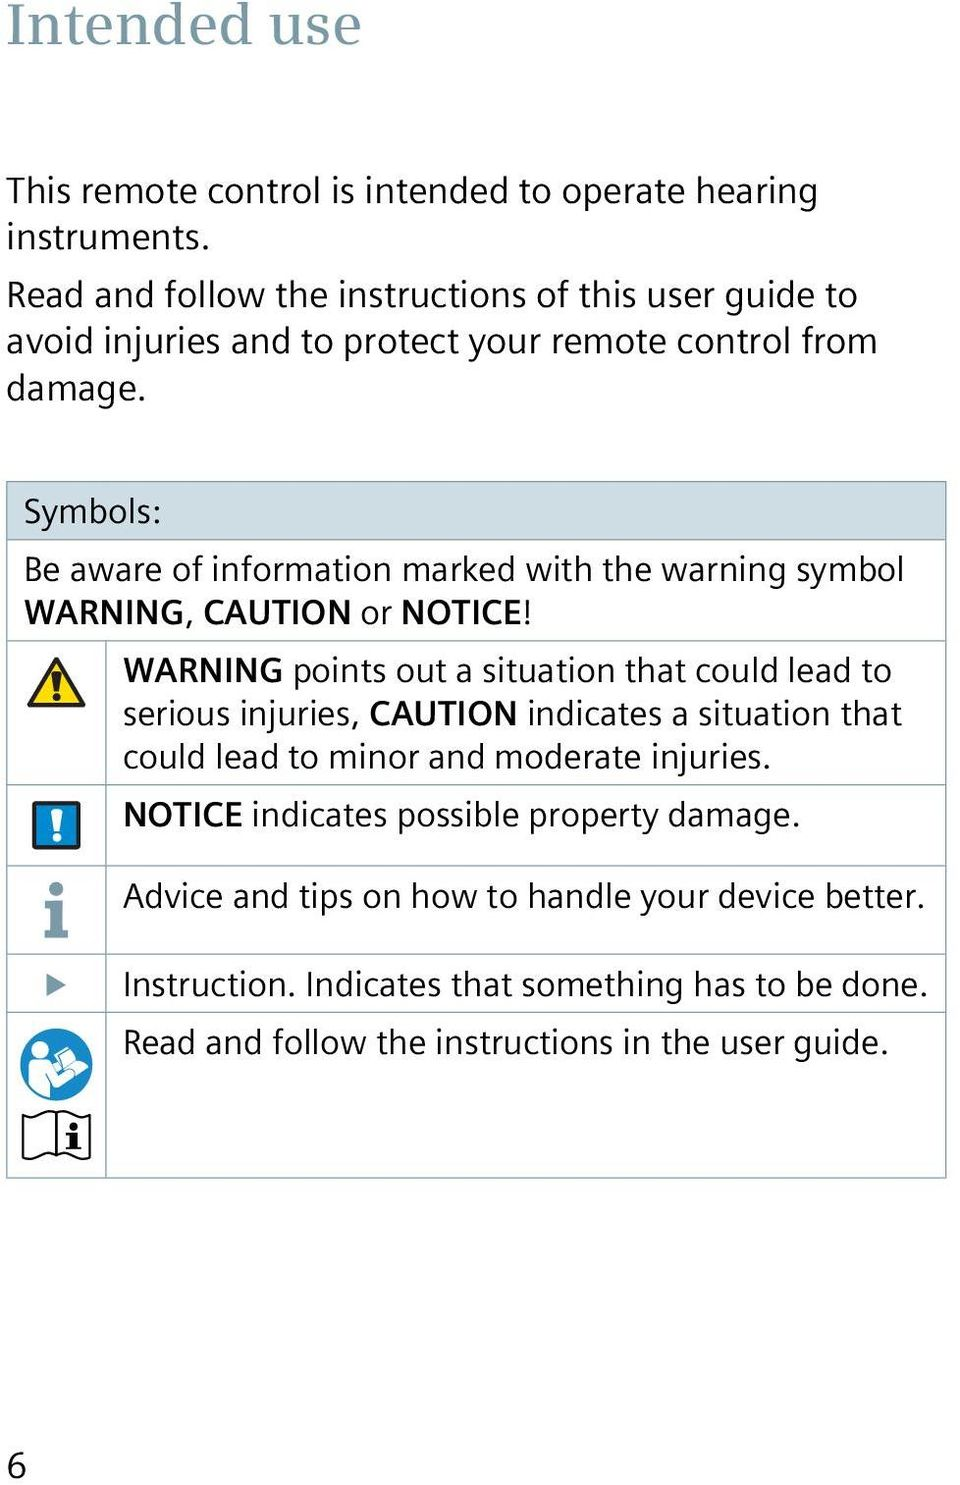 Symbols: Be aware of information marked with the warning symbol WARNING, CAUTION or NOTICE!